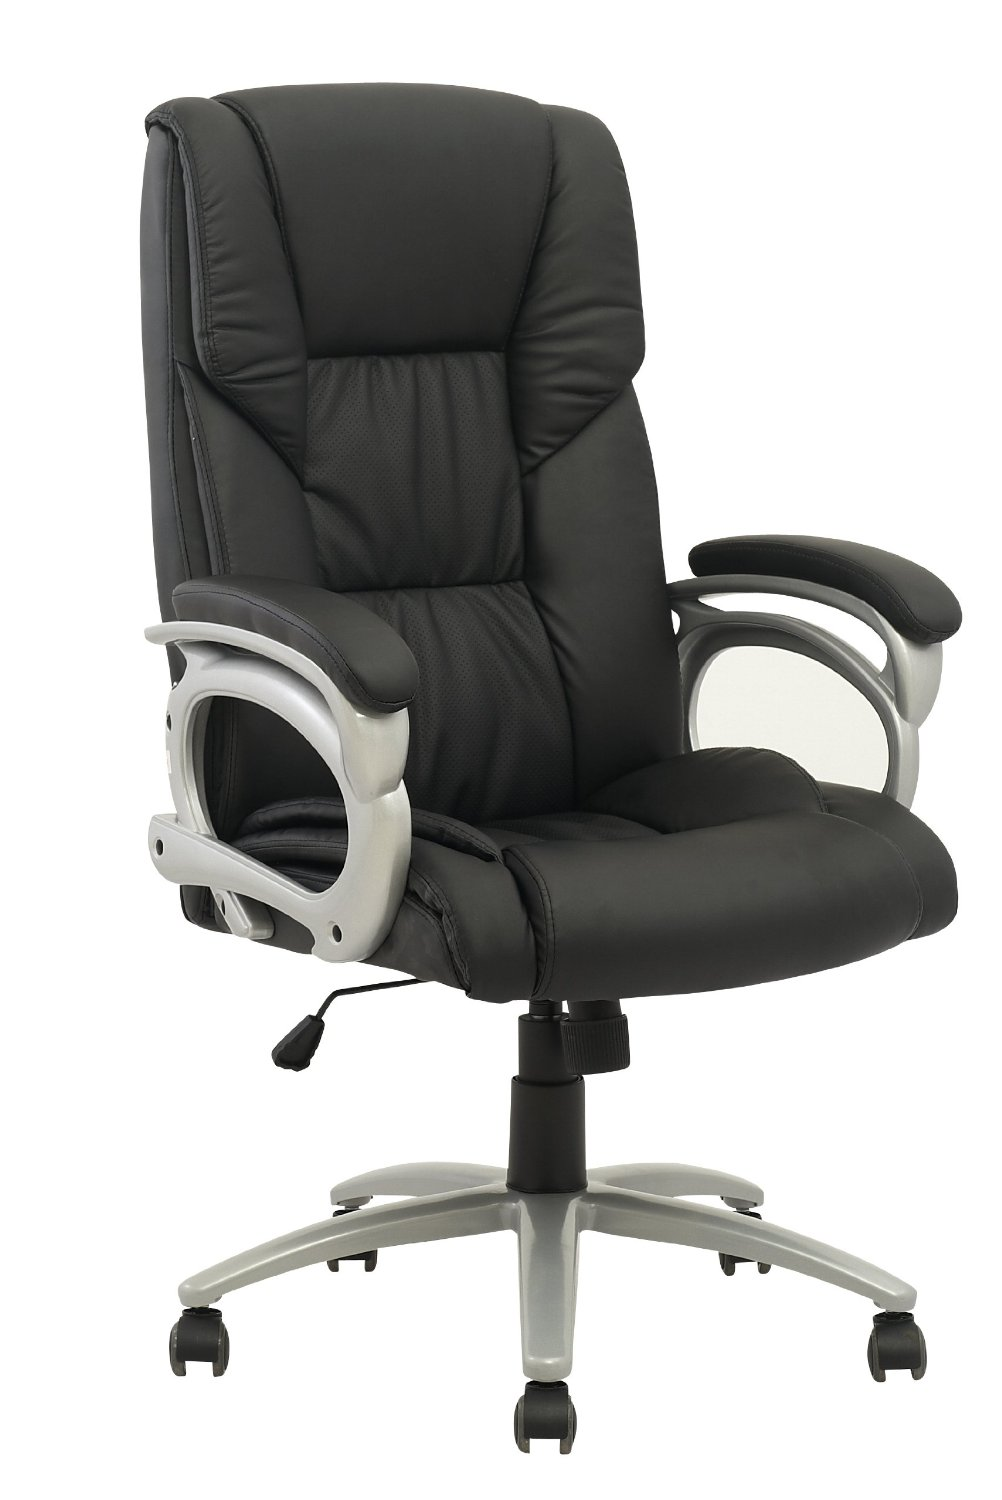 Office Furniture: Best Budget Office Chairs For Your Healthy And Comfy